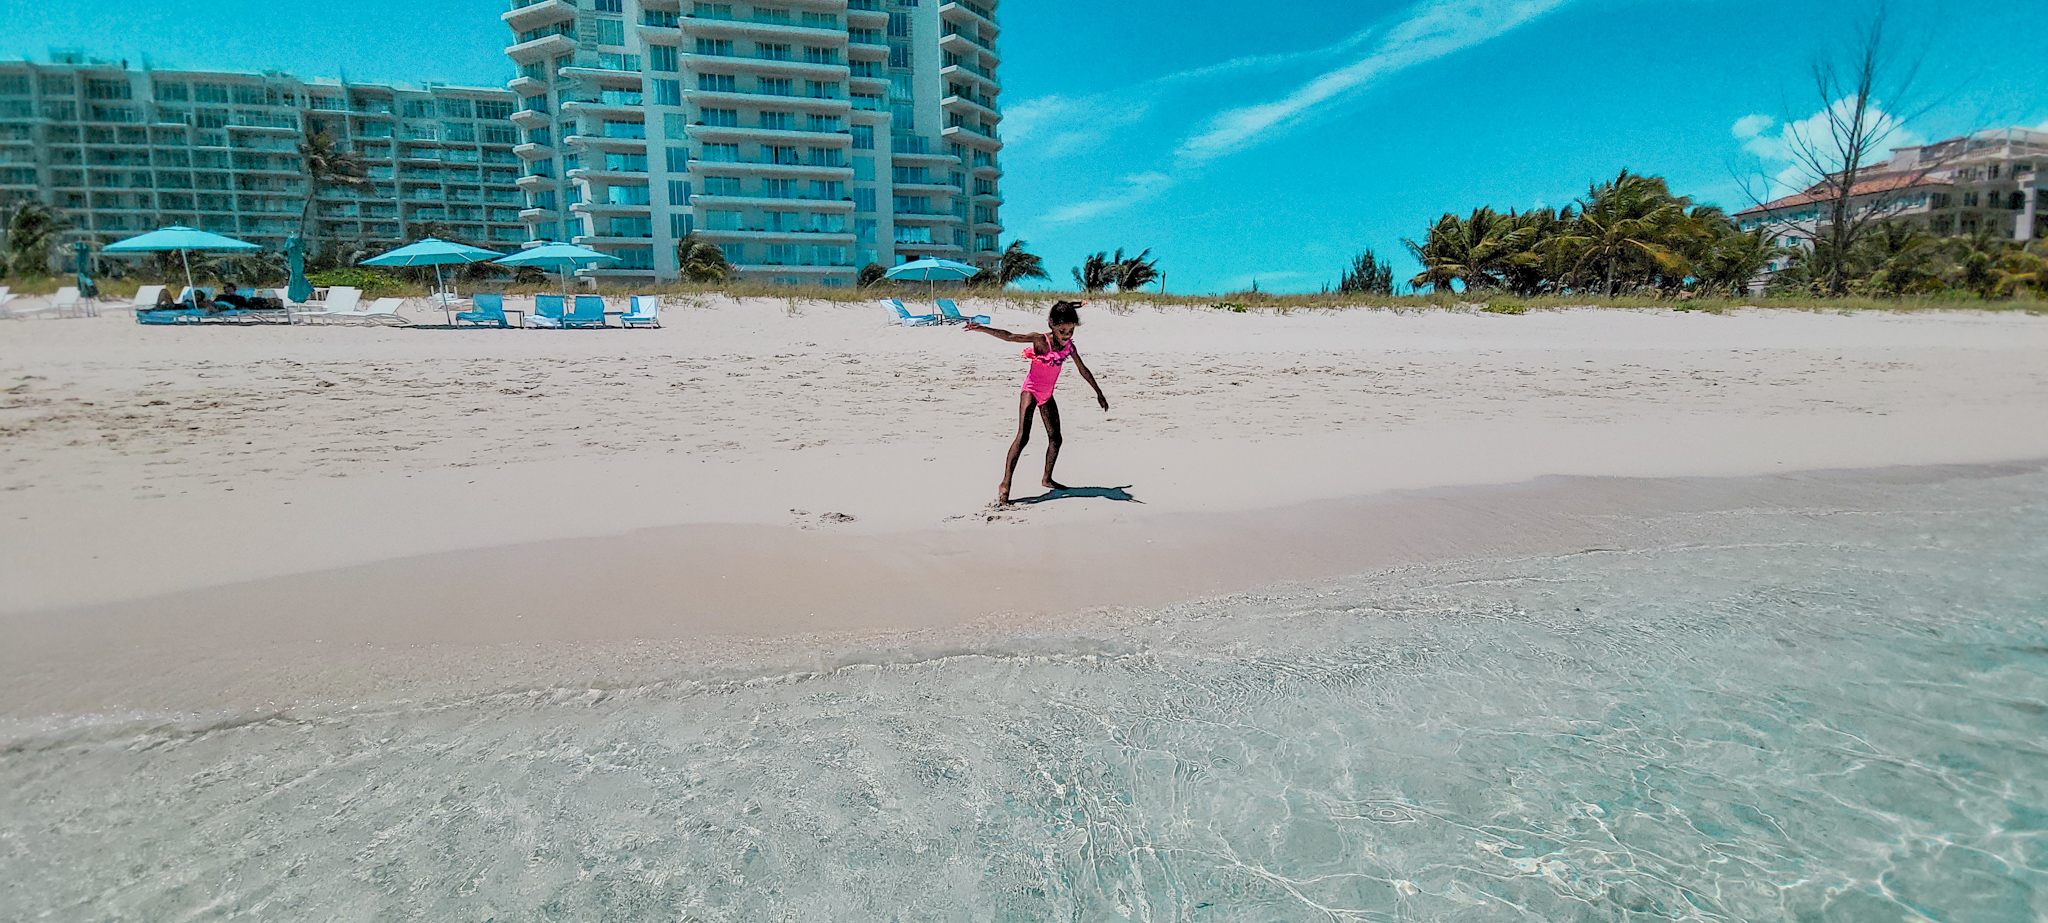 Ritz Carlton Turks and Caicos - Family Vacations to Turks and Caicos